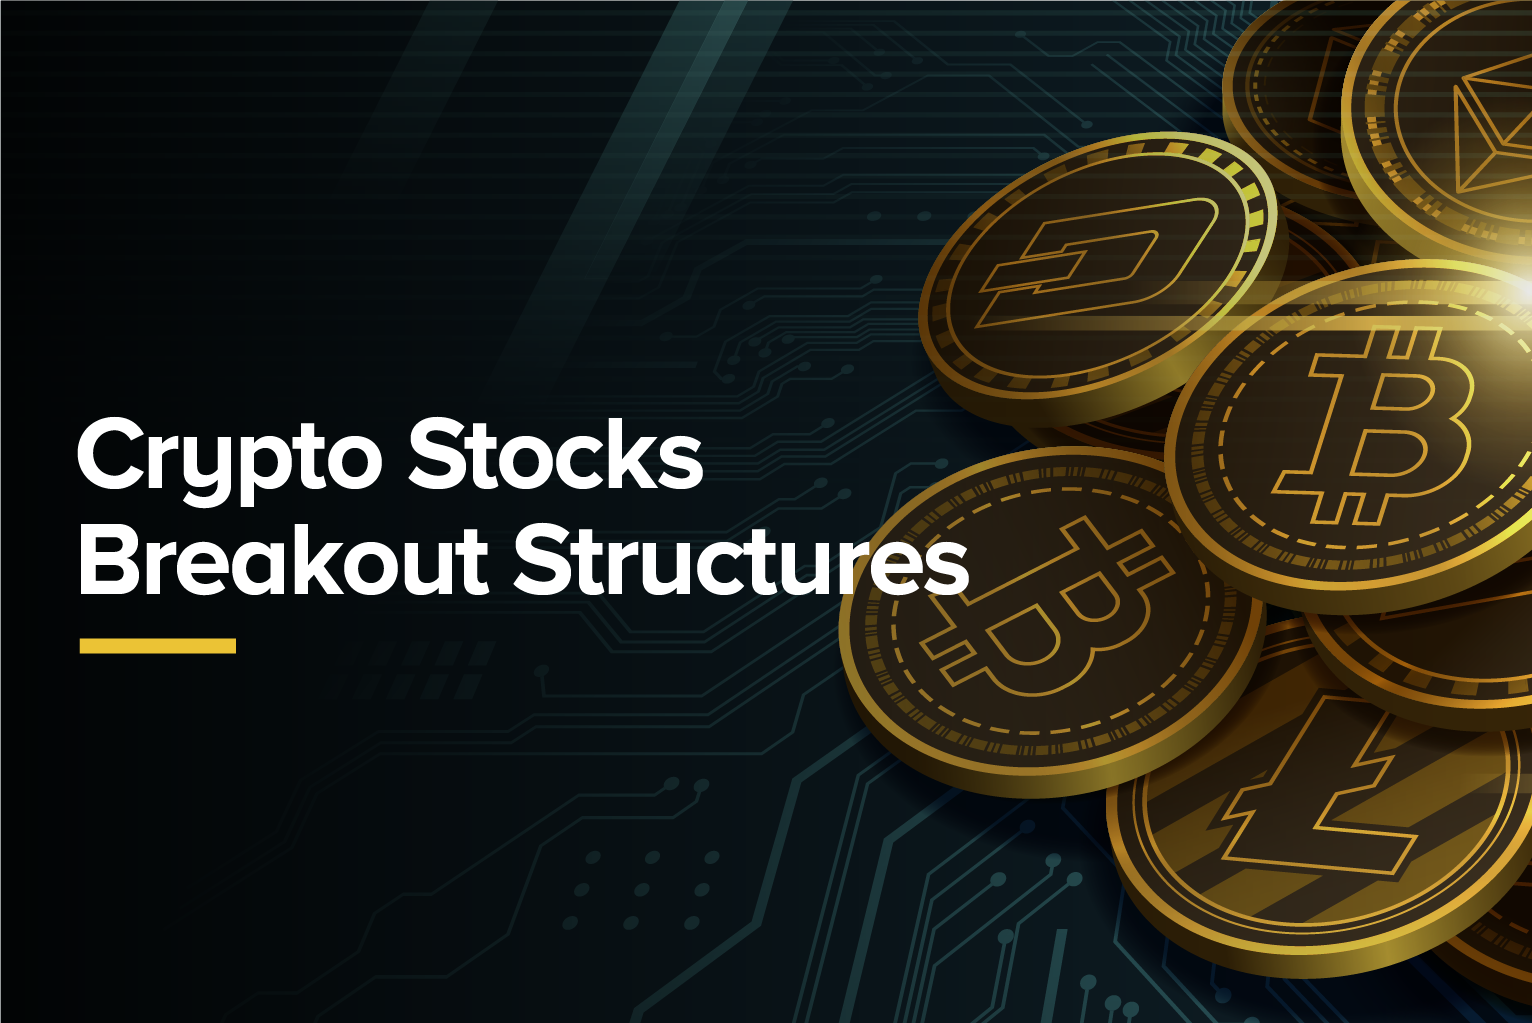 Crypto Stocks Breakout Structures